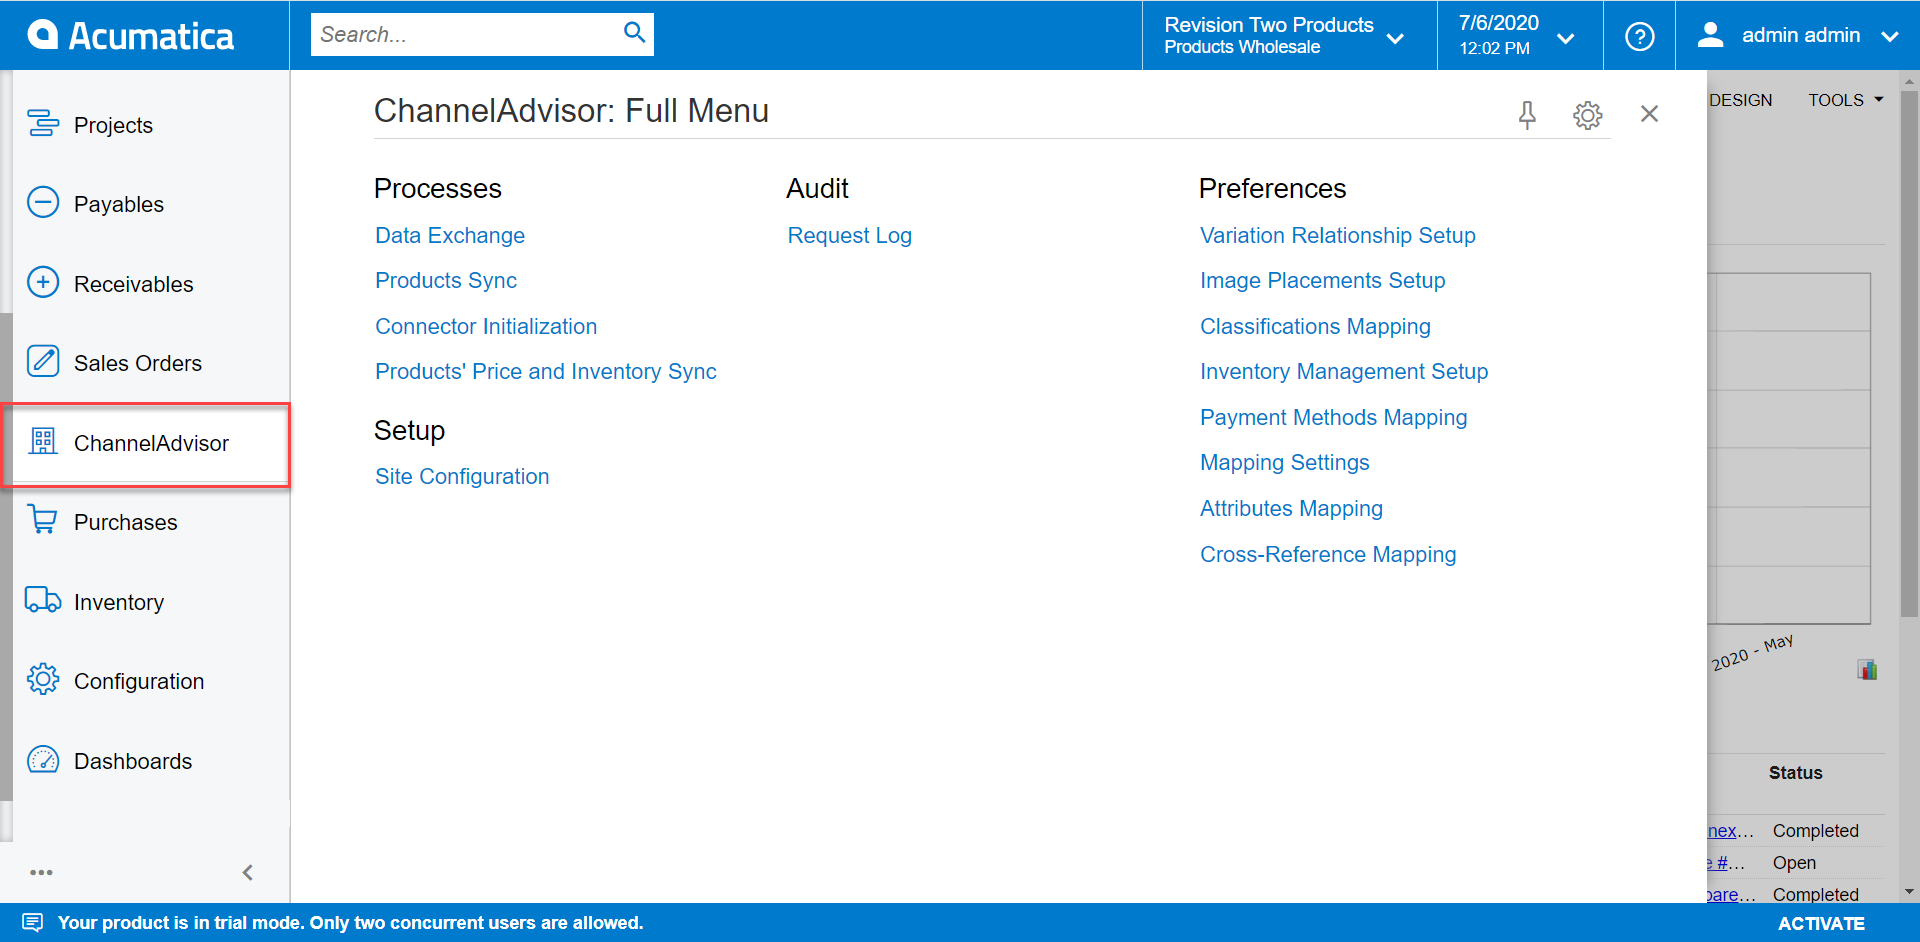 ChannelAdvisor Workplace in Acumatica